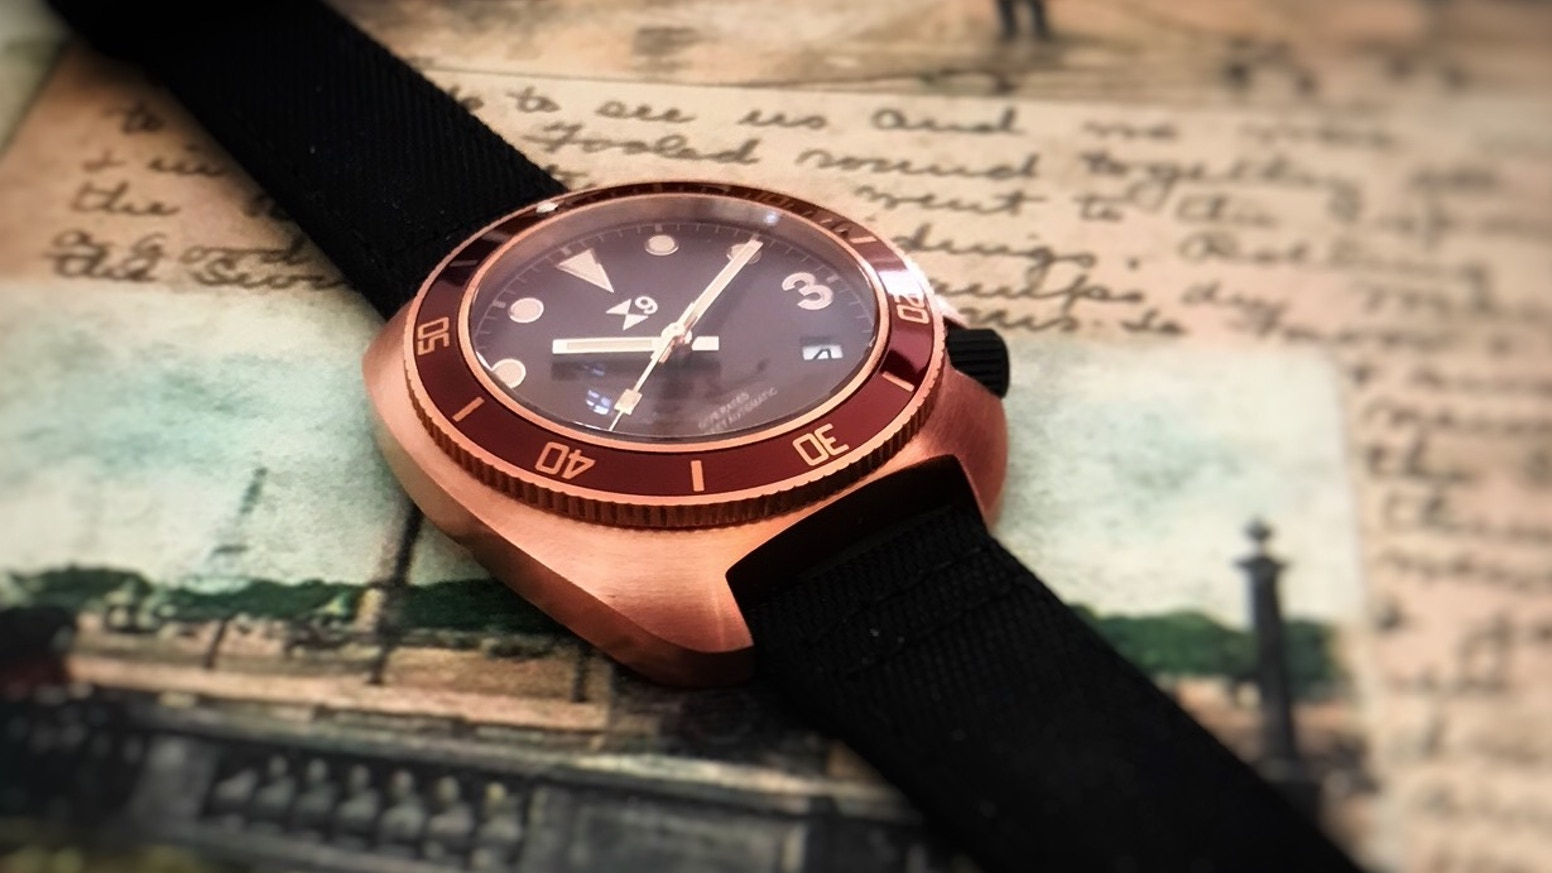 Mark 2 of our iconic 1970's inspired divers watch. A solid bronze automatic dive watch of proven quality at an incredibly low price.